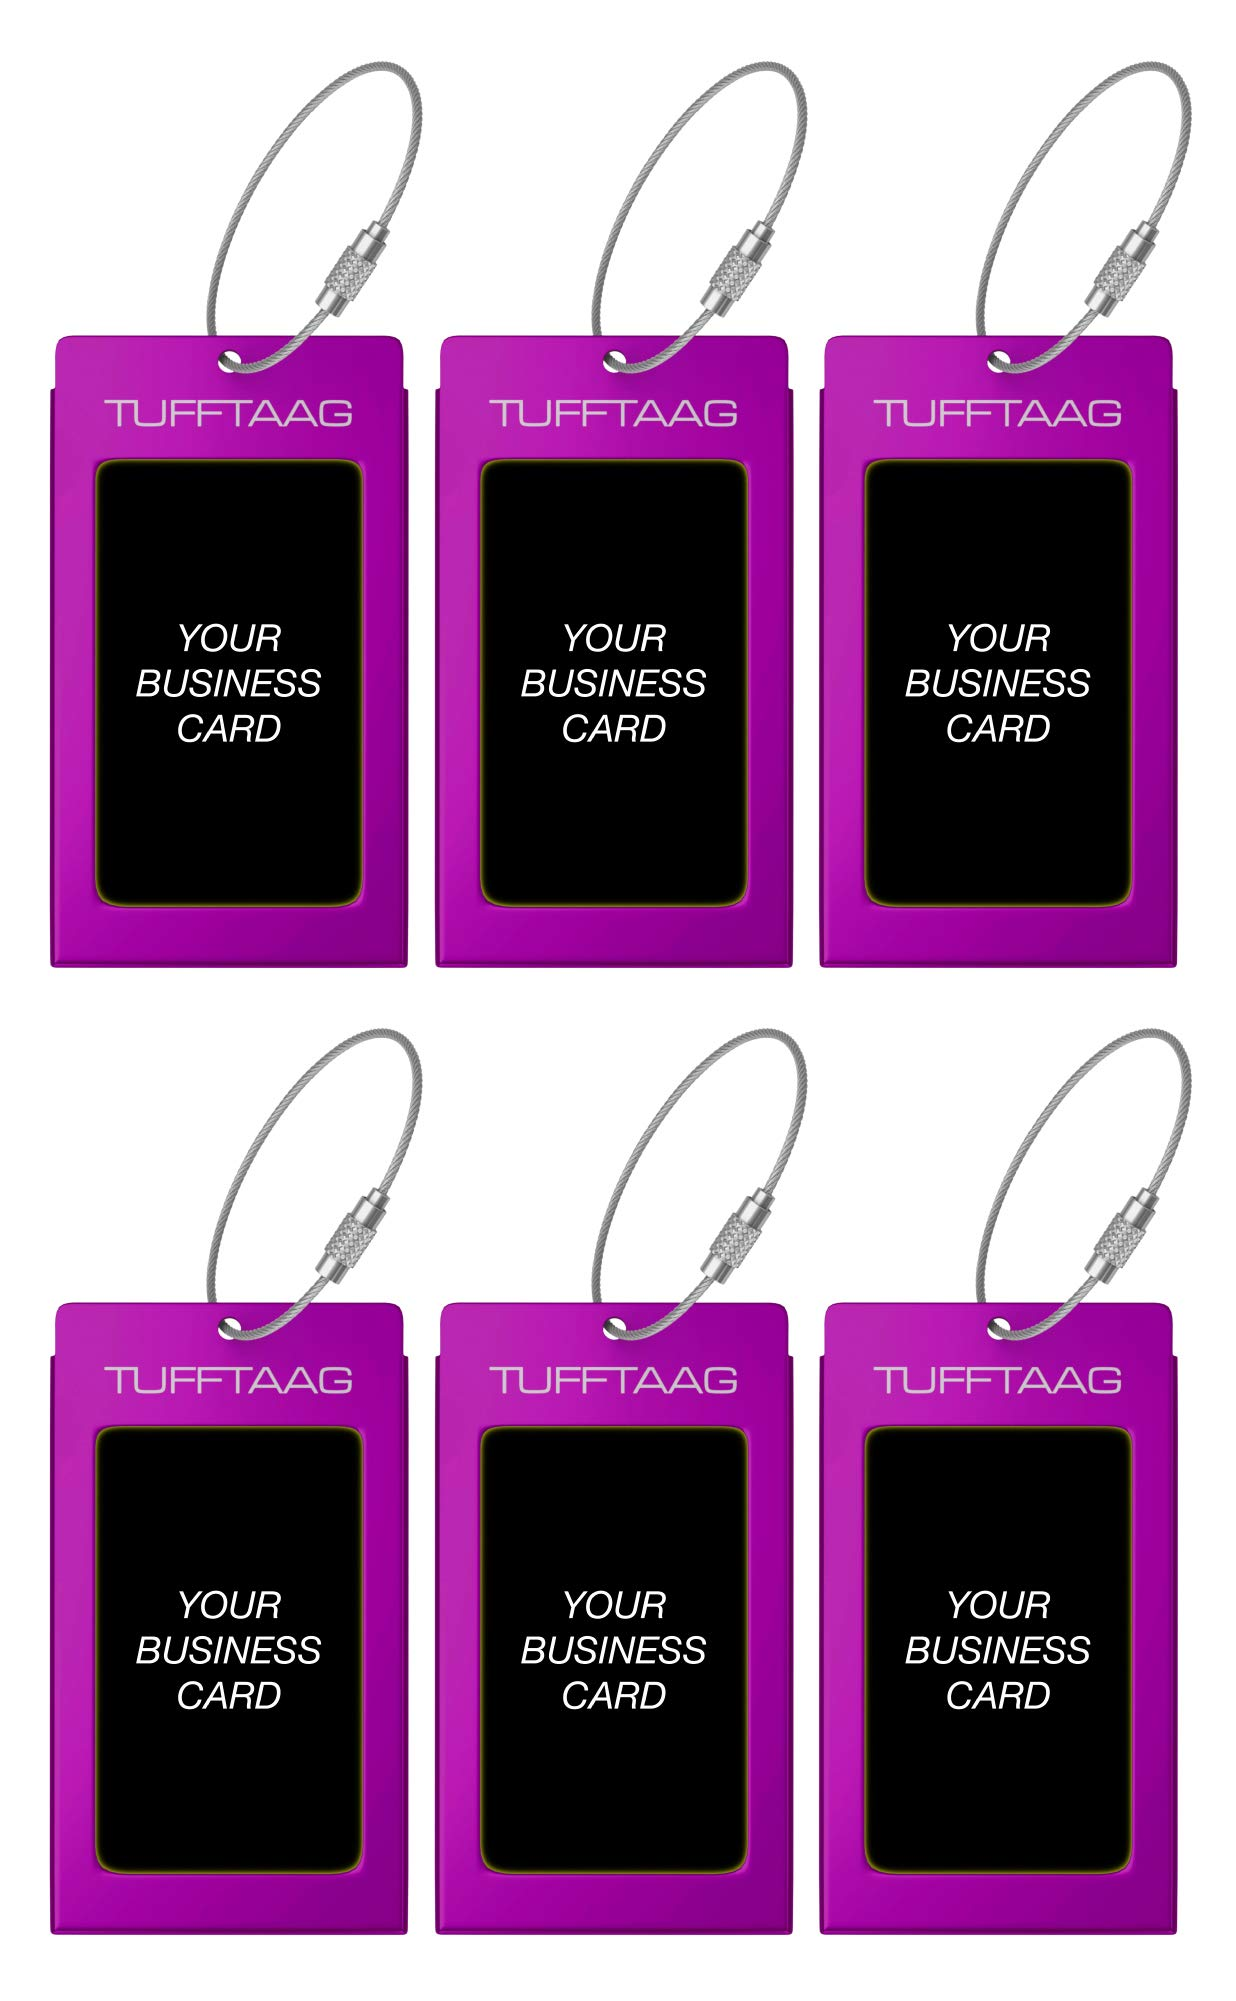 Luggage Tags TUFFTAAG for Business Cards, Metal Suitcase Labels, 6 Pack Bundle (6 Purple) by ProudGuy